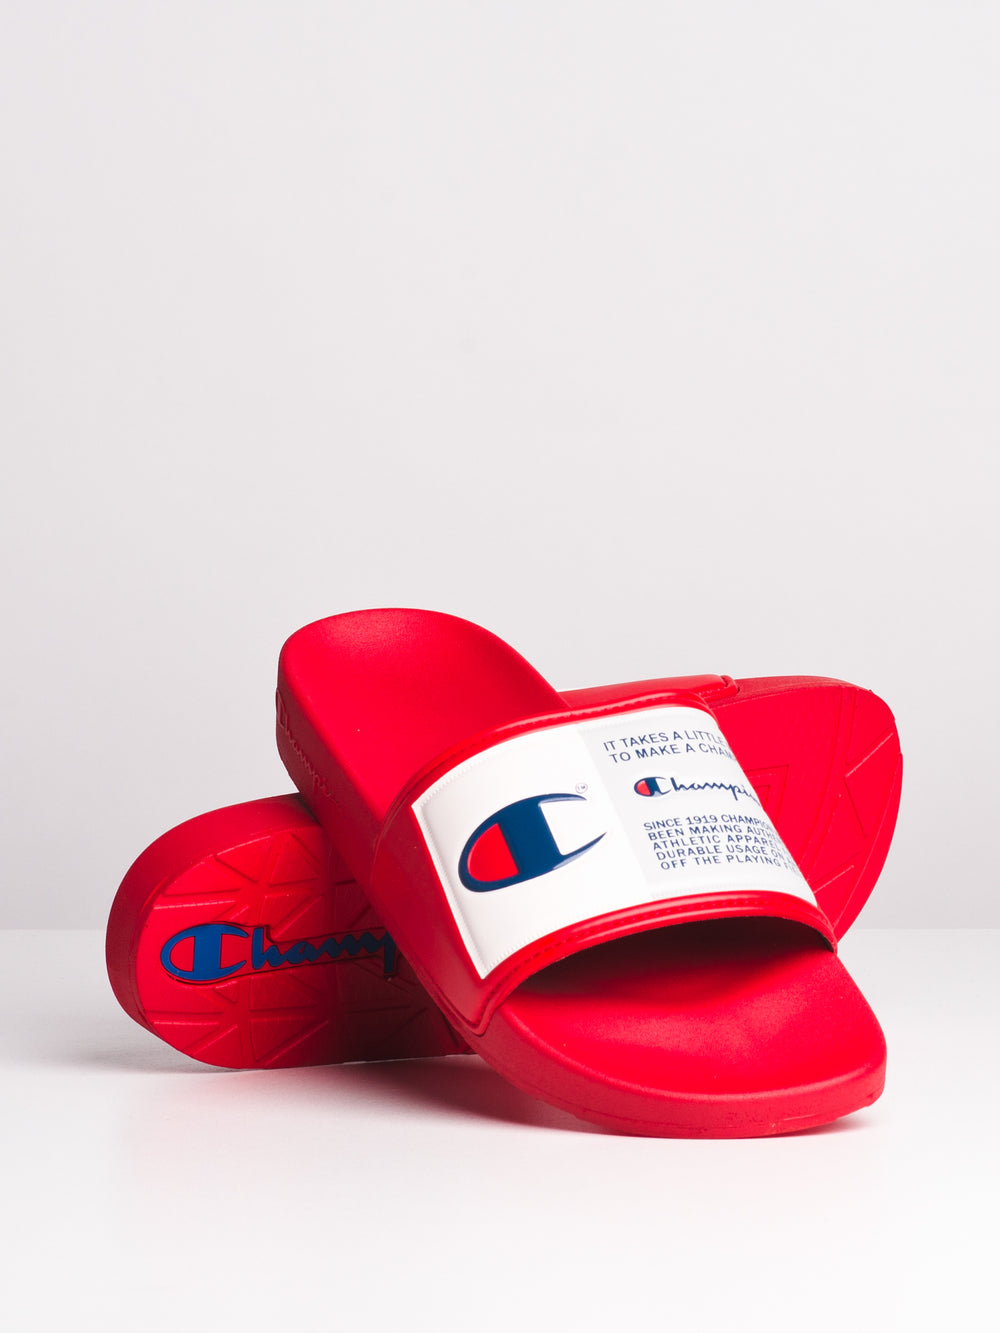 MENS IPO JOCK - RED SLIDES - CLEARANCE